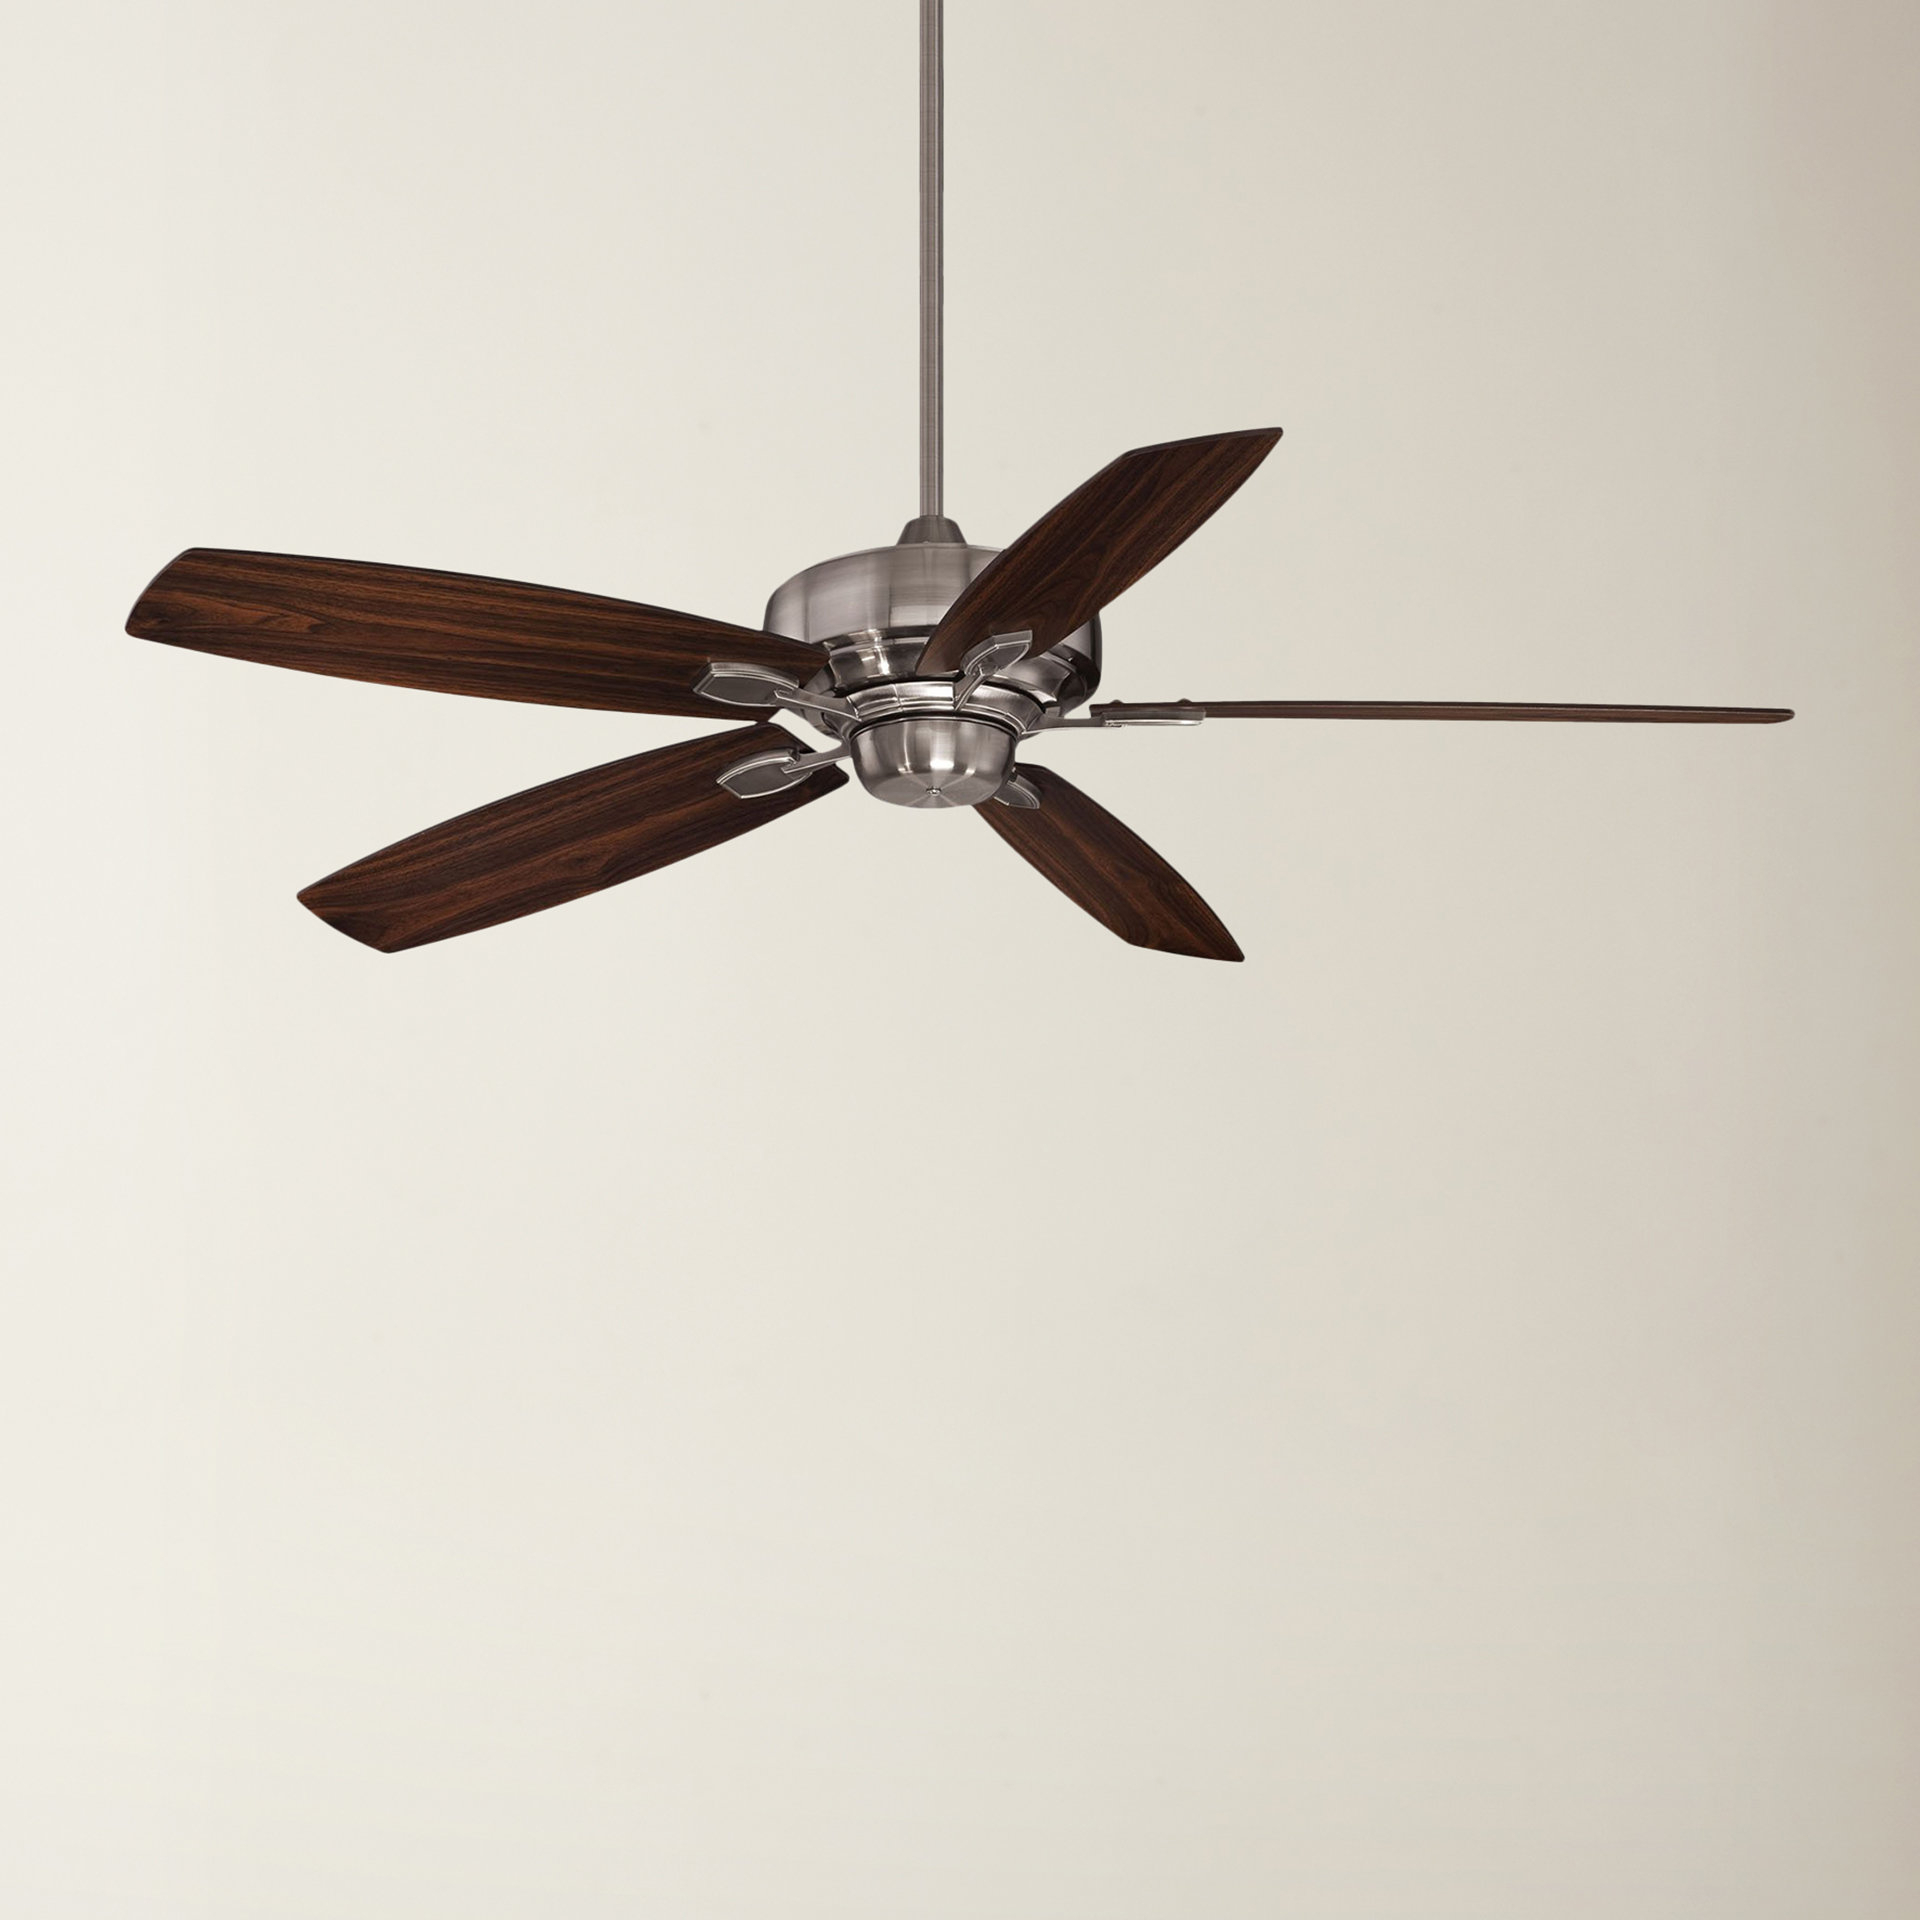 "Creslow 5 Blade Ceiling Fans For Well Liked 52"" Peever 5 Blade Ceiling Fan (View 4 of 20)"